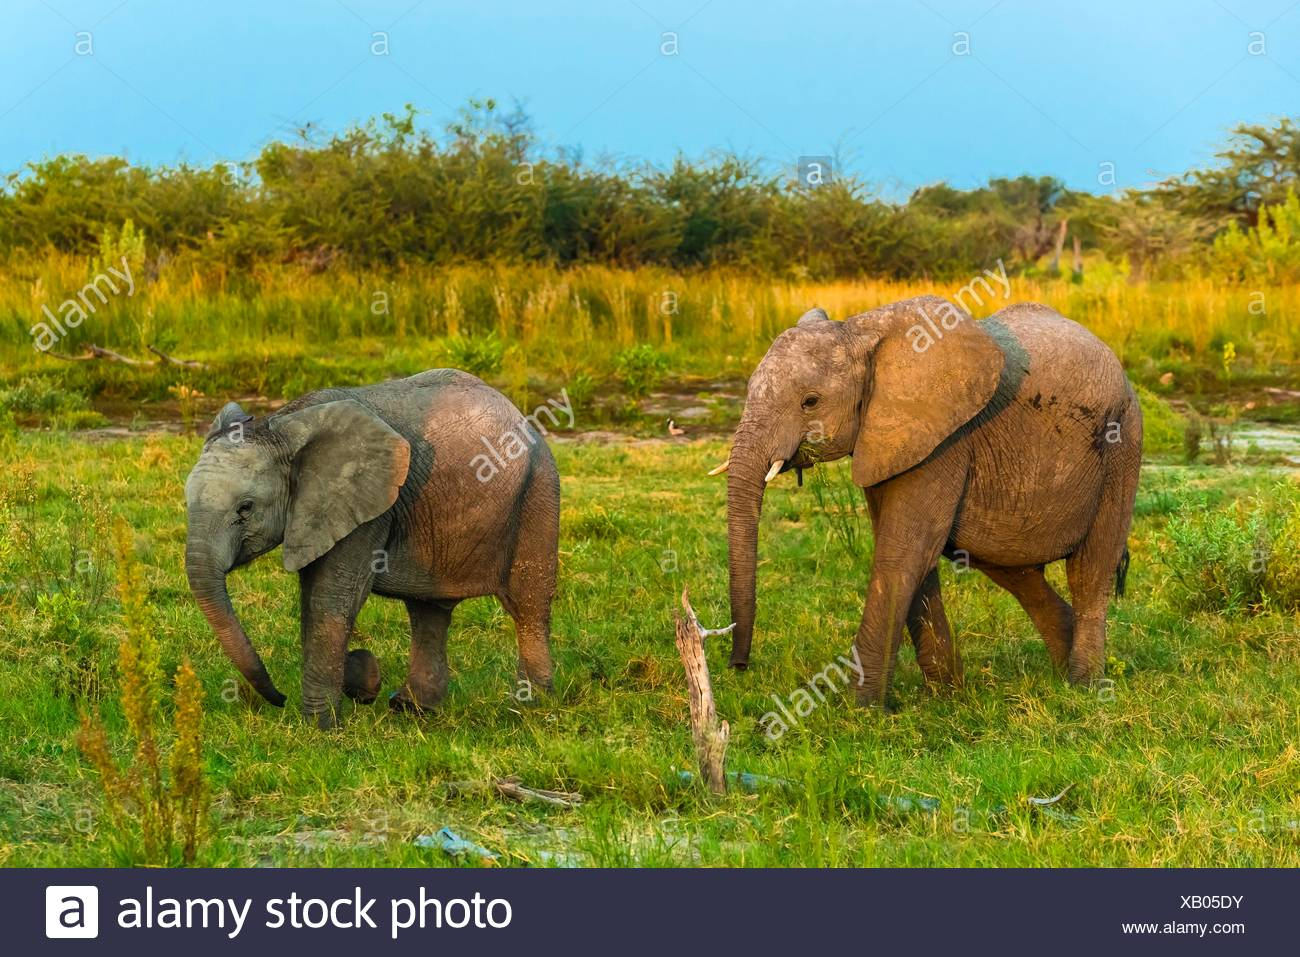 Baby elephants, Kwando Concession, Linyanti Marshes, Botswana. Stock Photo